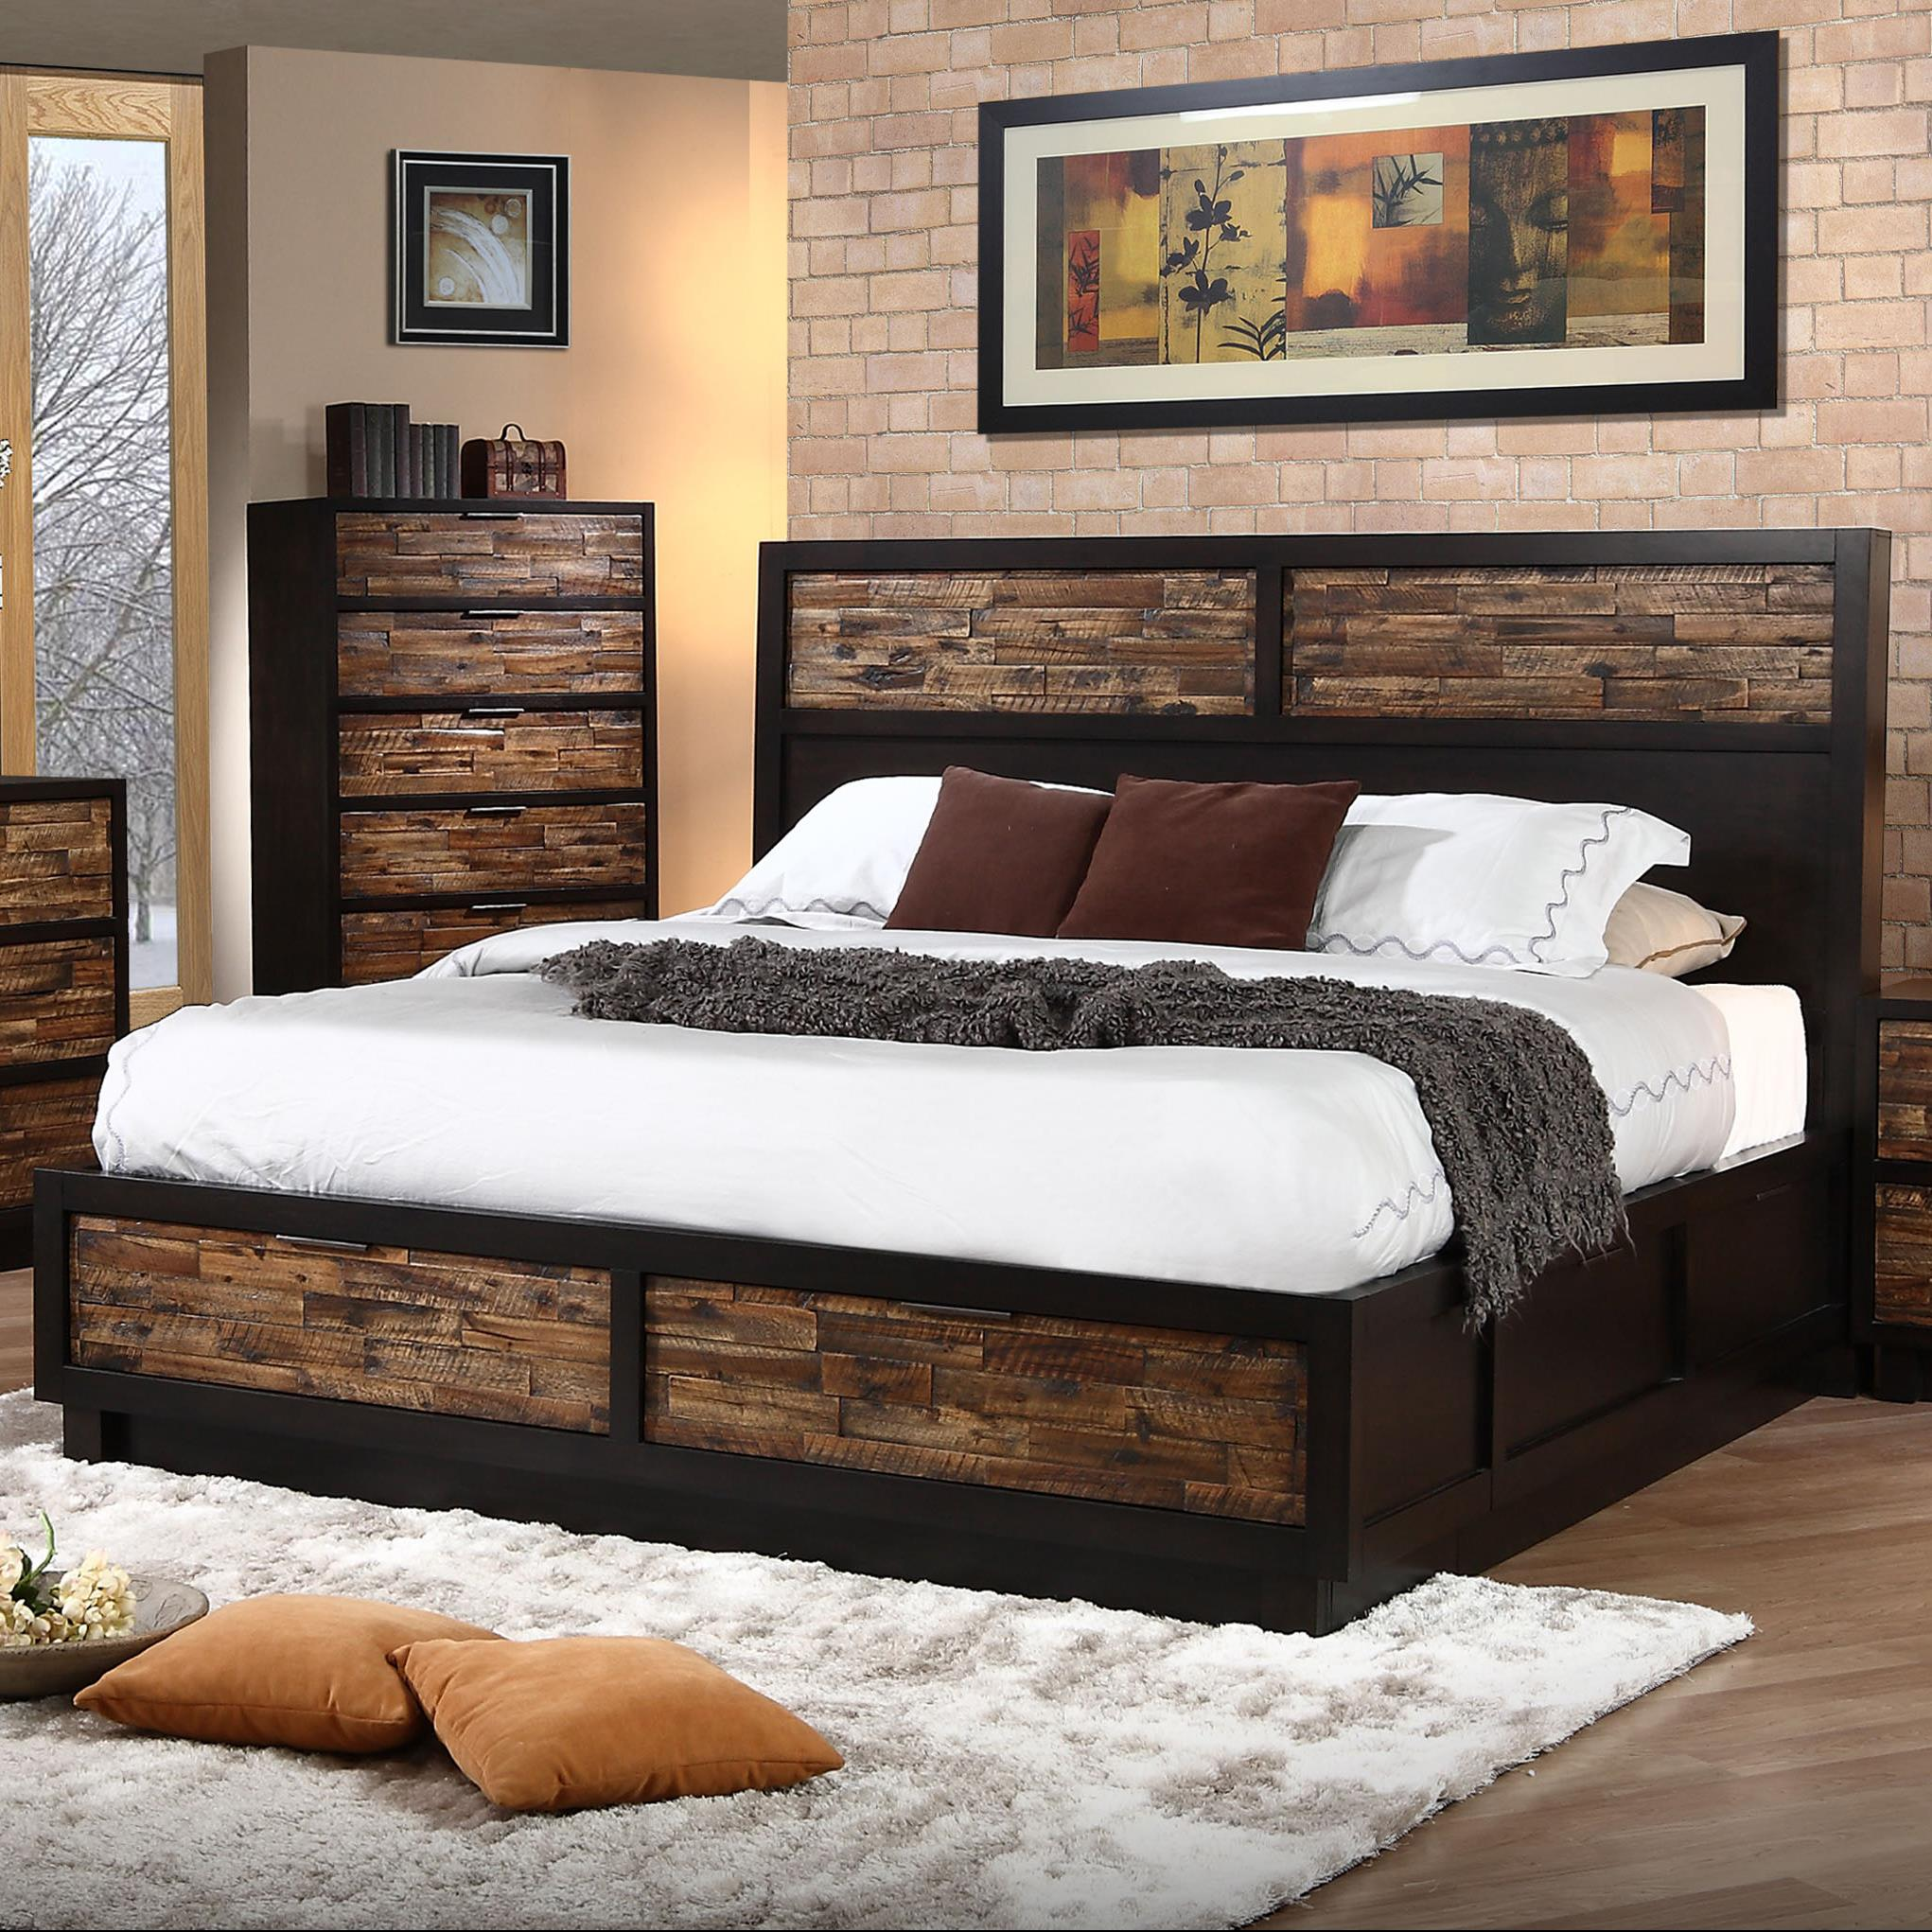 new classic makeeda queen low profile bed with footboard storage knight furniture mattress. Black Bedroom Furniture Sets. Home Design Ideas